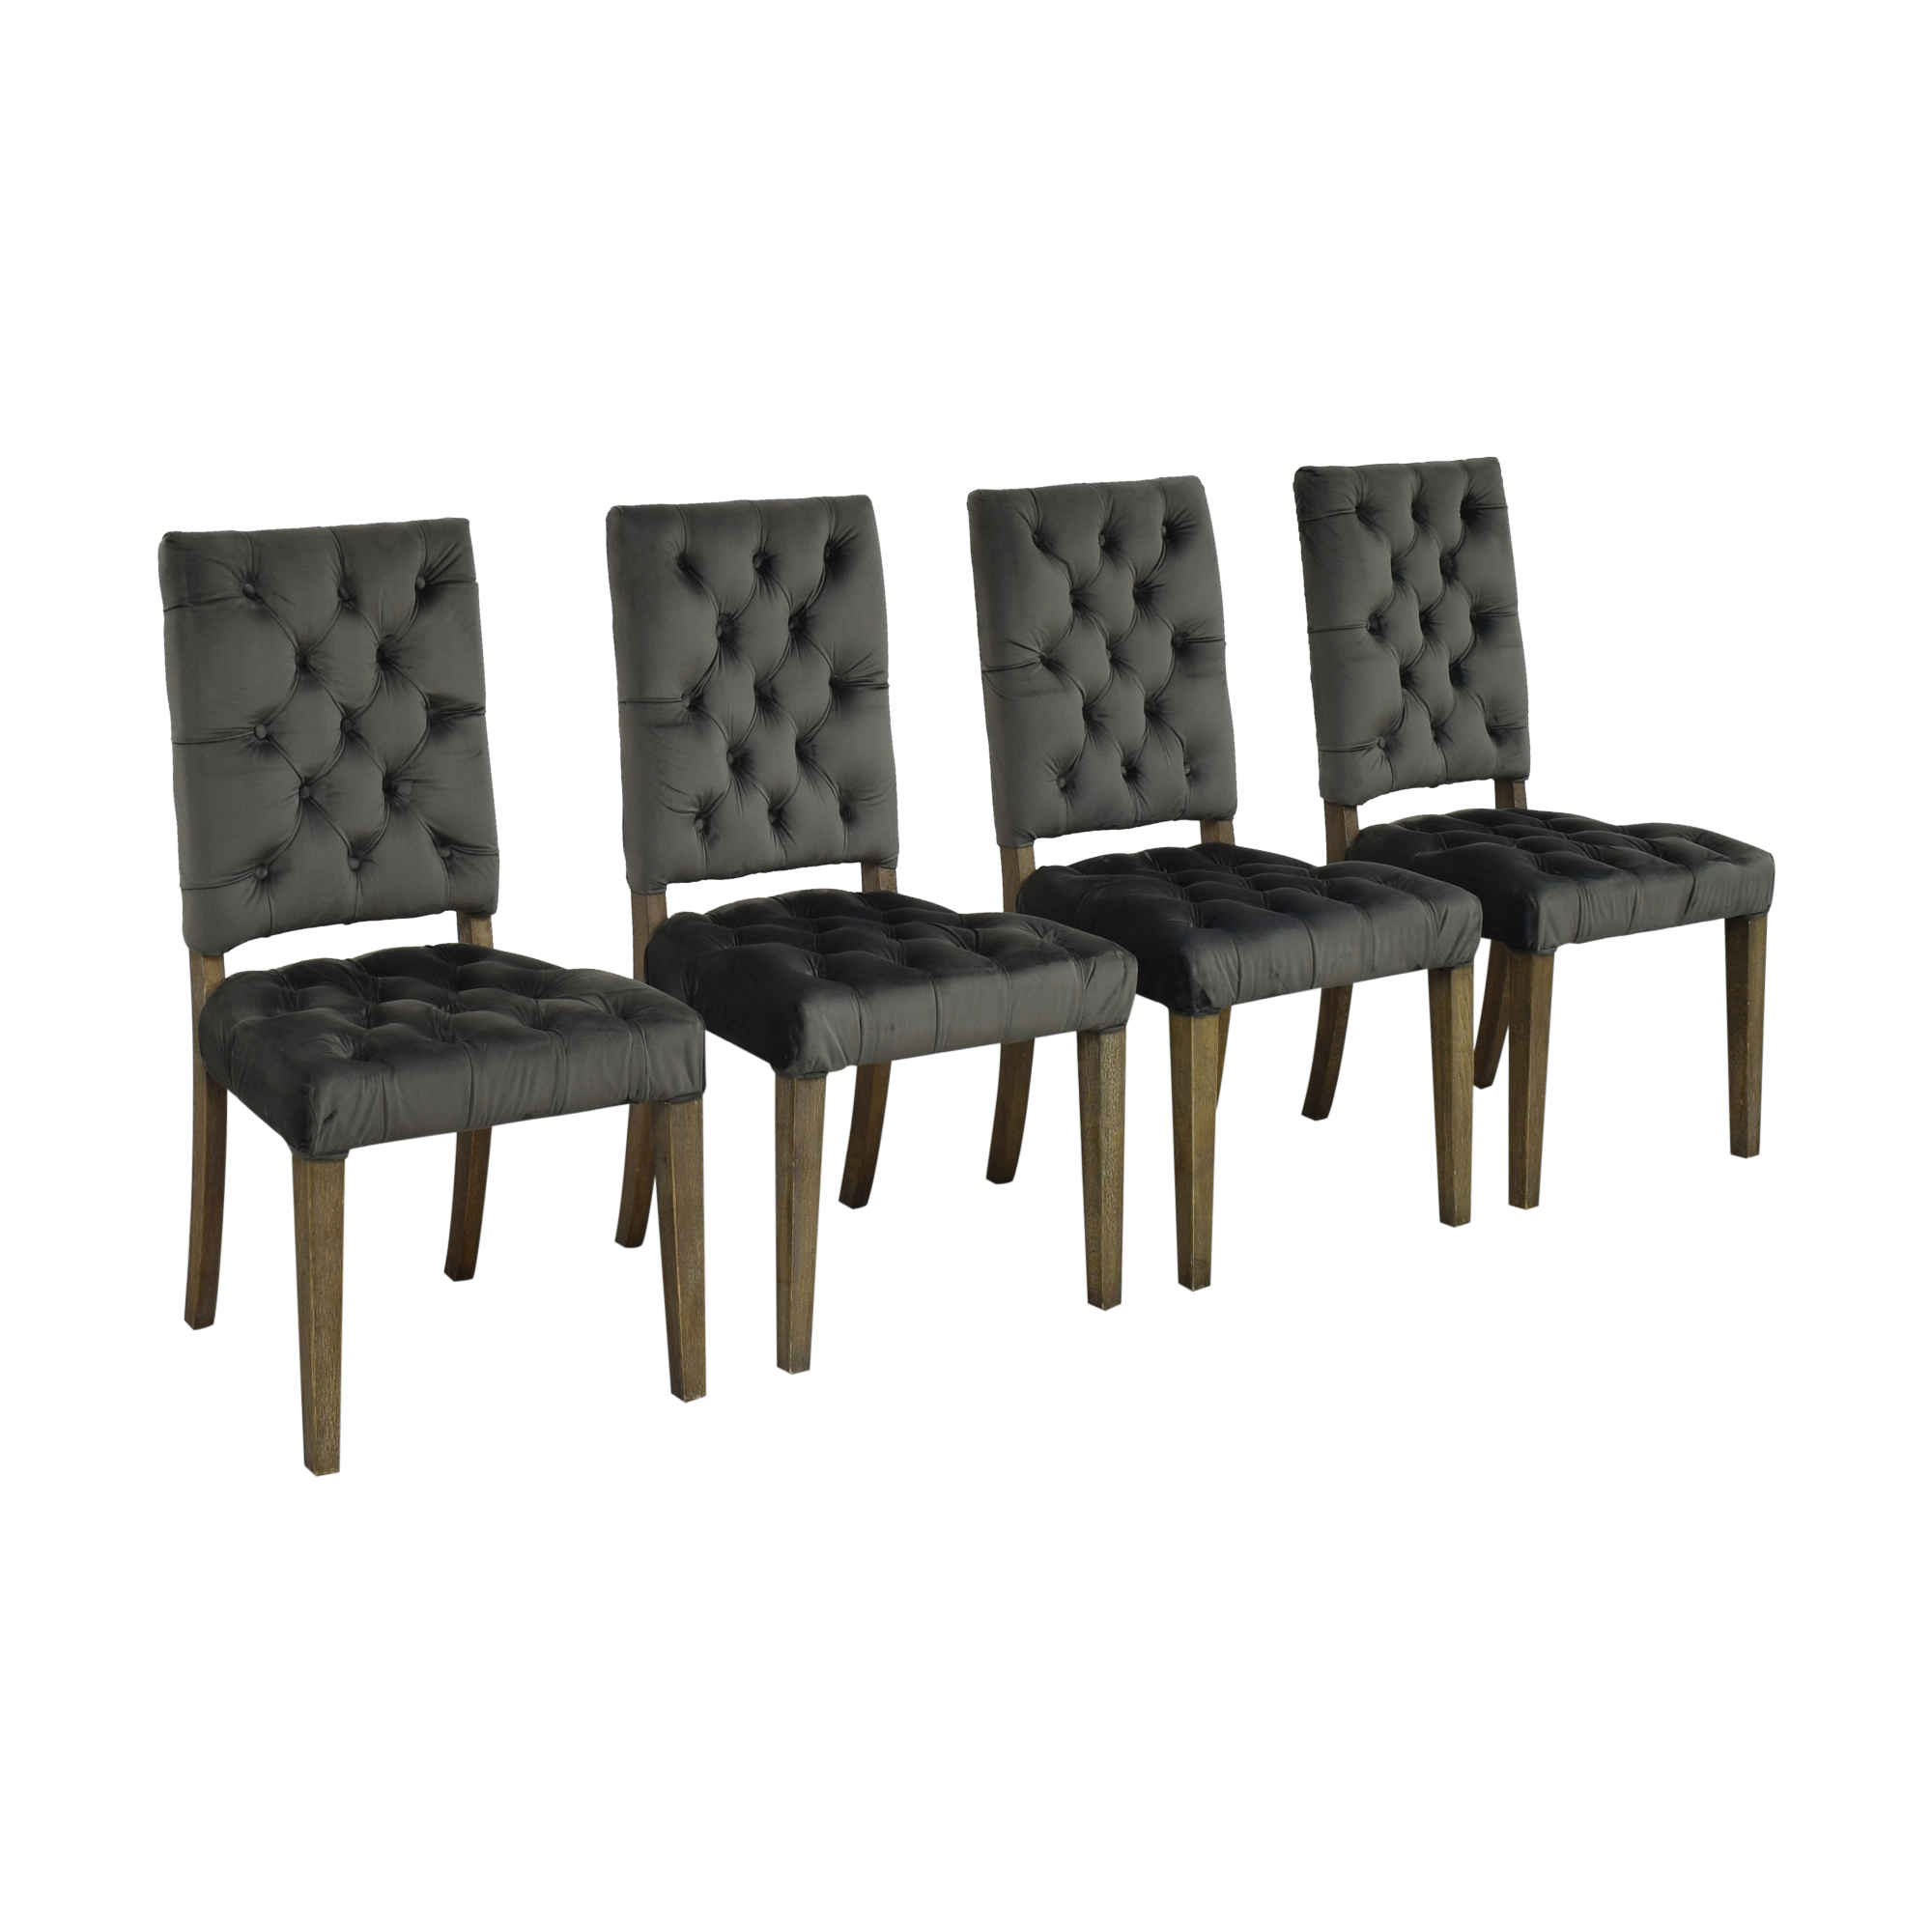 Christopher Knight Home Saltillo Dining Chairs / Chairs